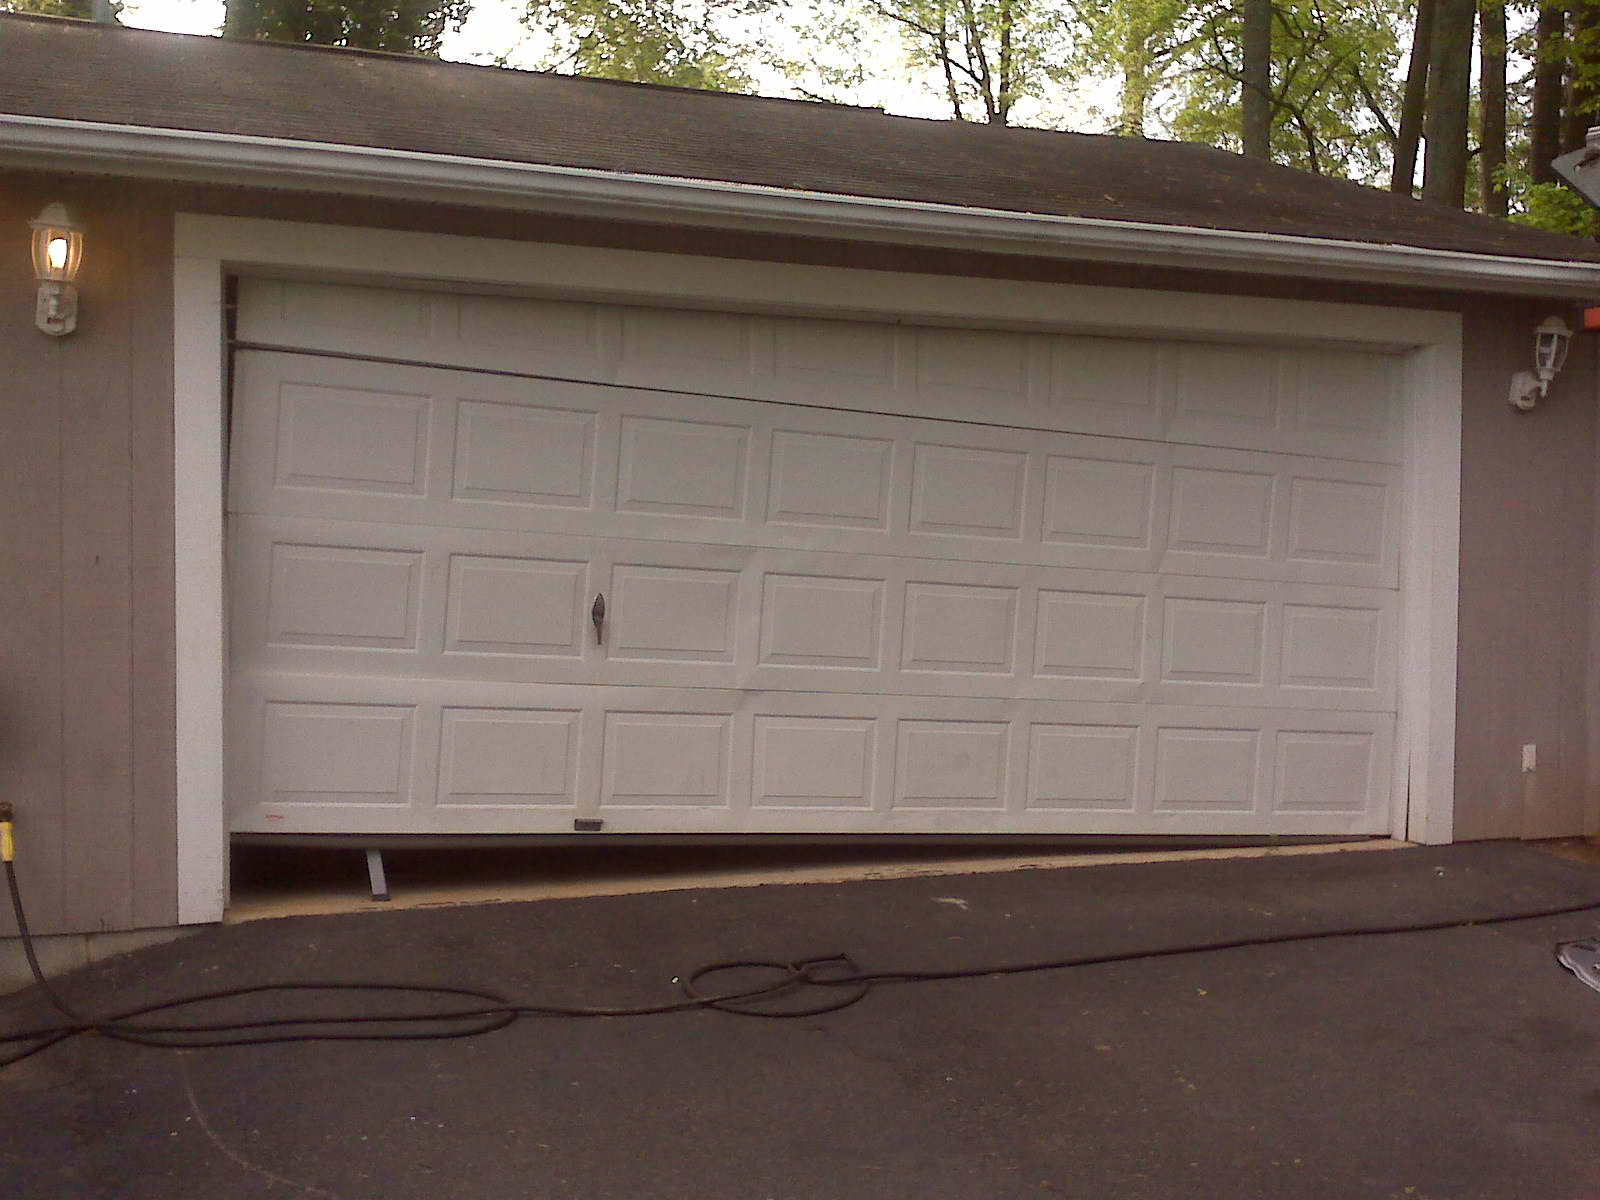 1200 #967335 Broken Garage Door 2 A Plus Garage Doors picture/photo Garages Doors 36391600